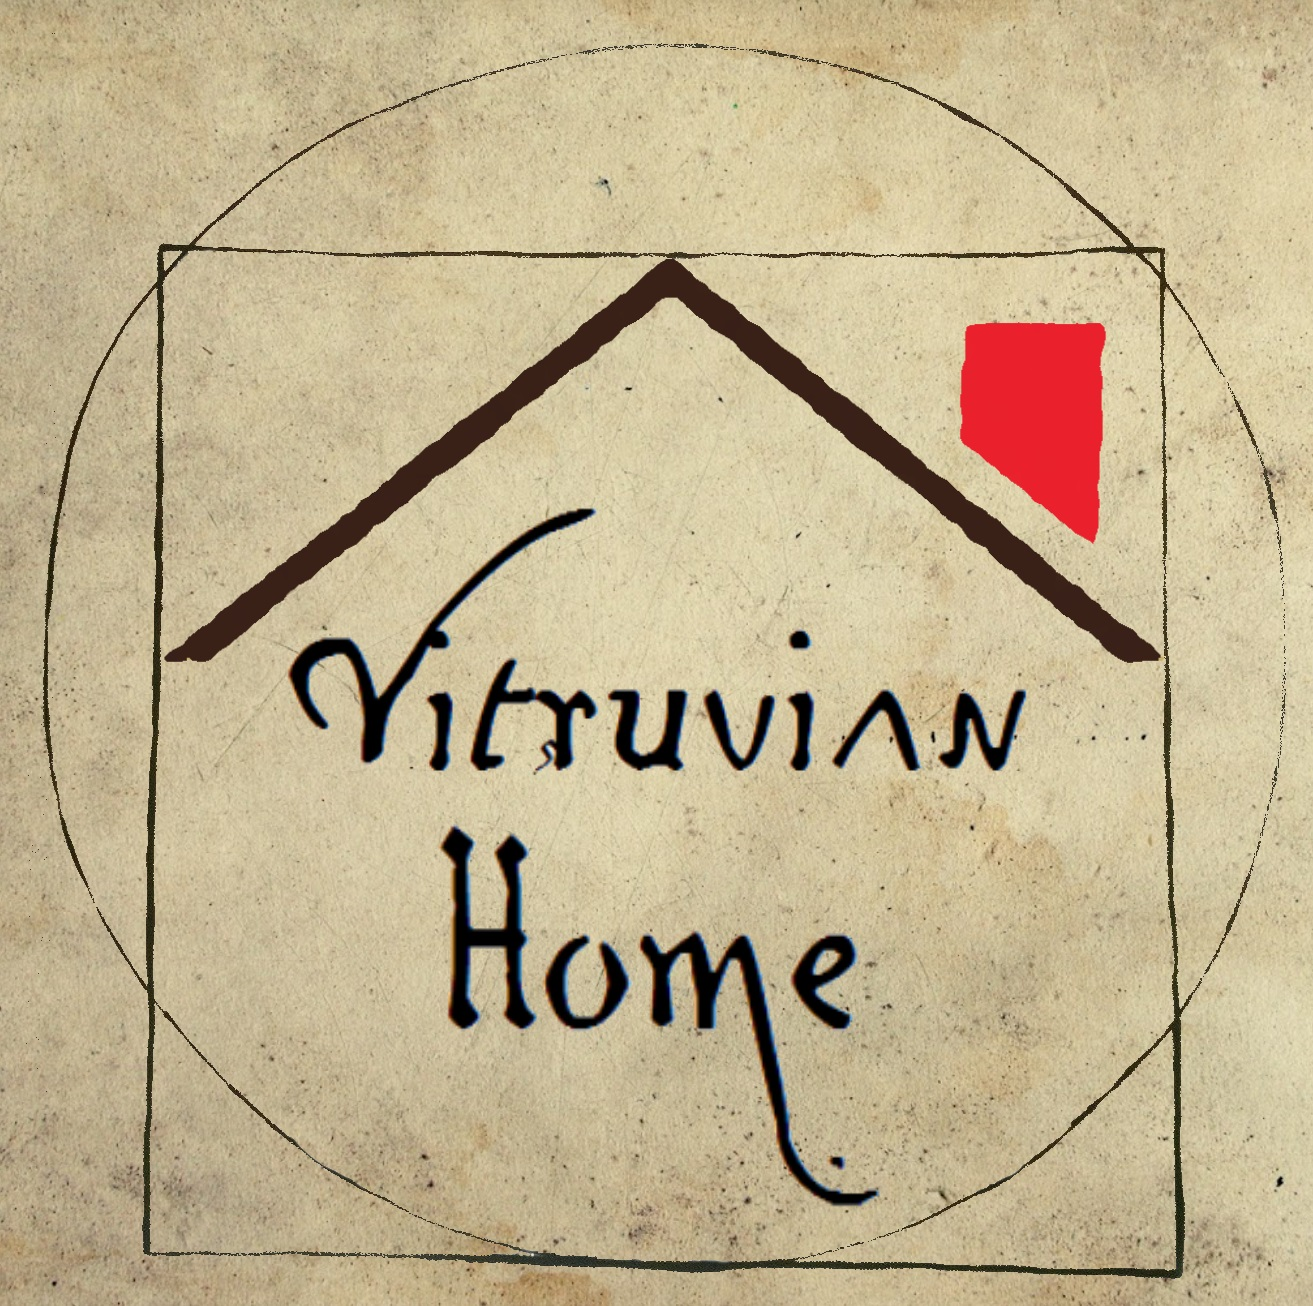 Vitruvian home no. 2.jpg